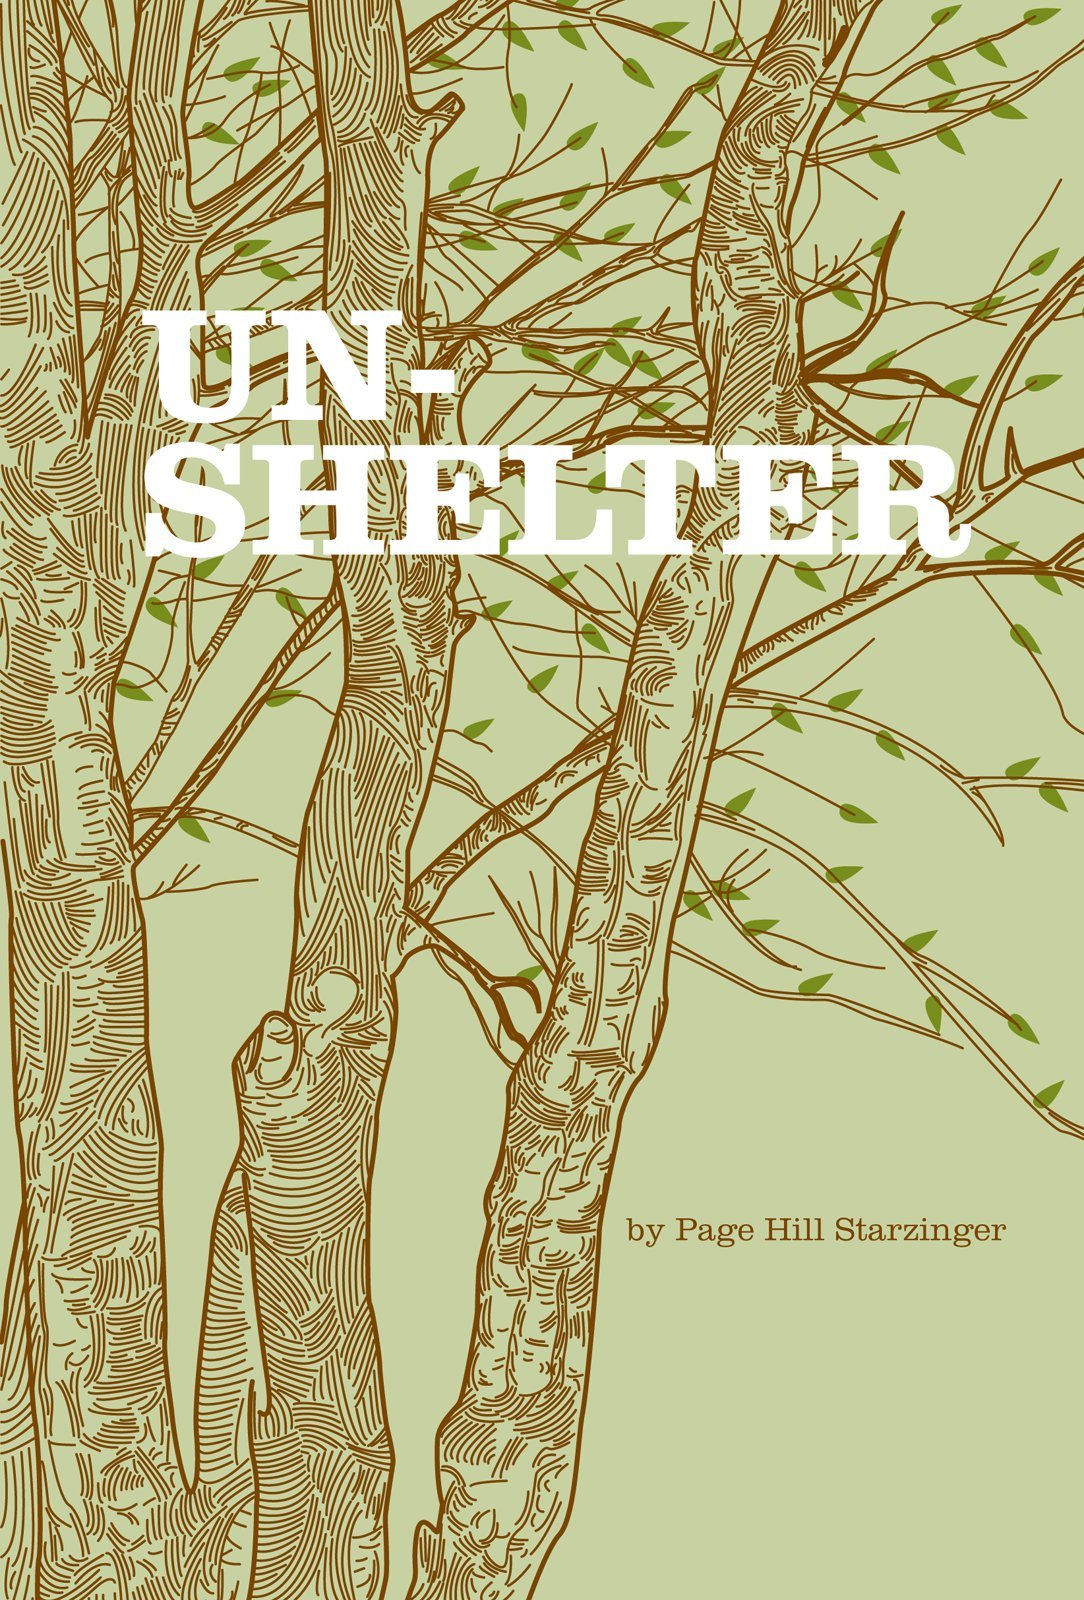 unshelter by Paige Hill Starzinger book cover